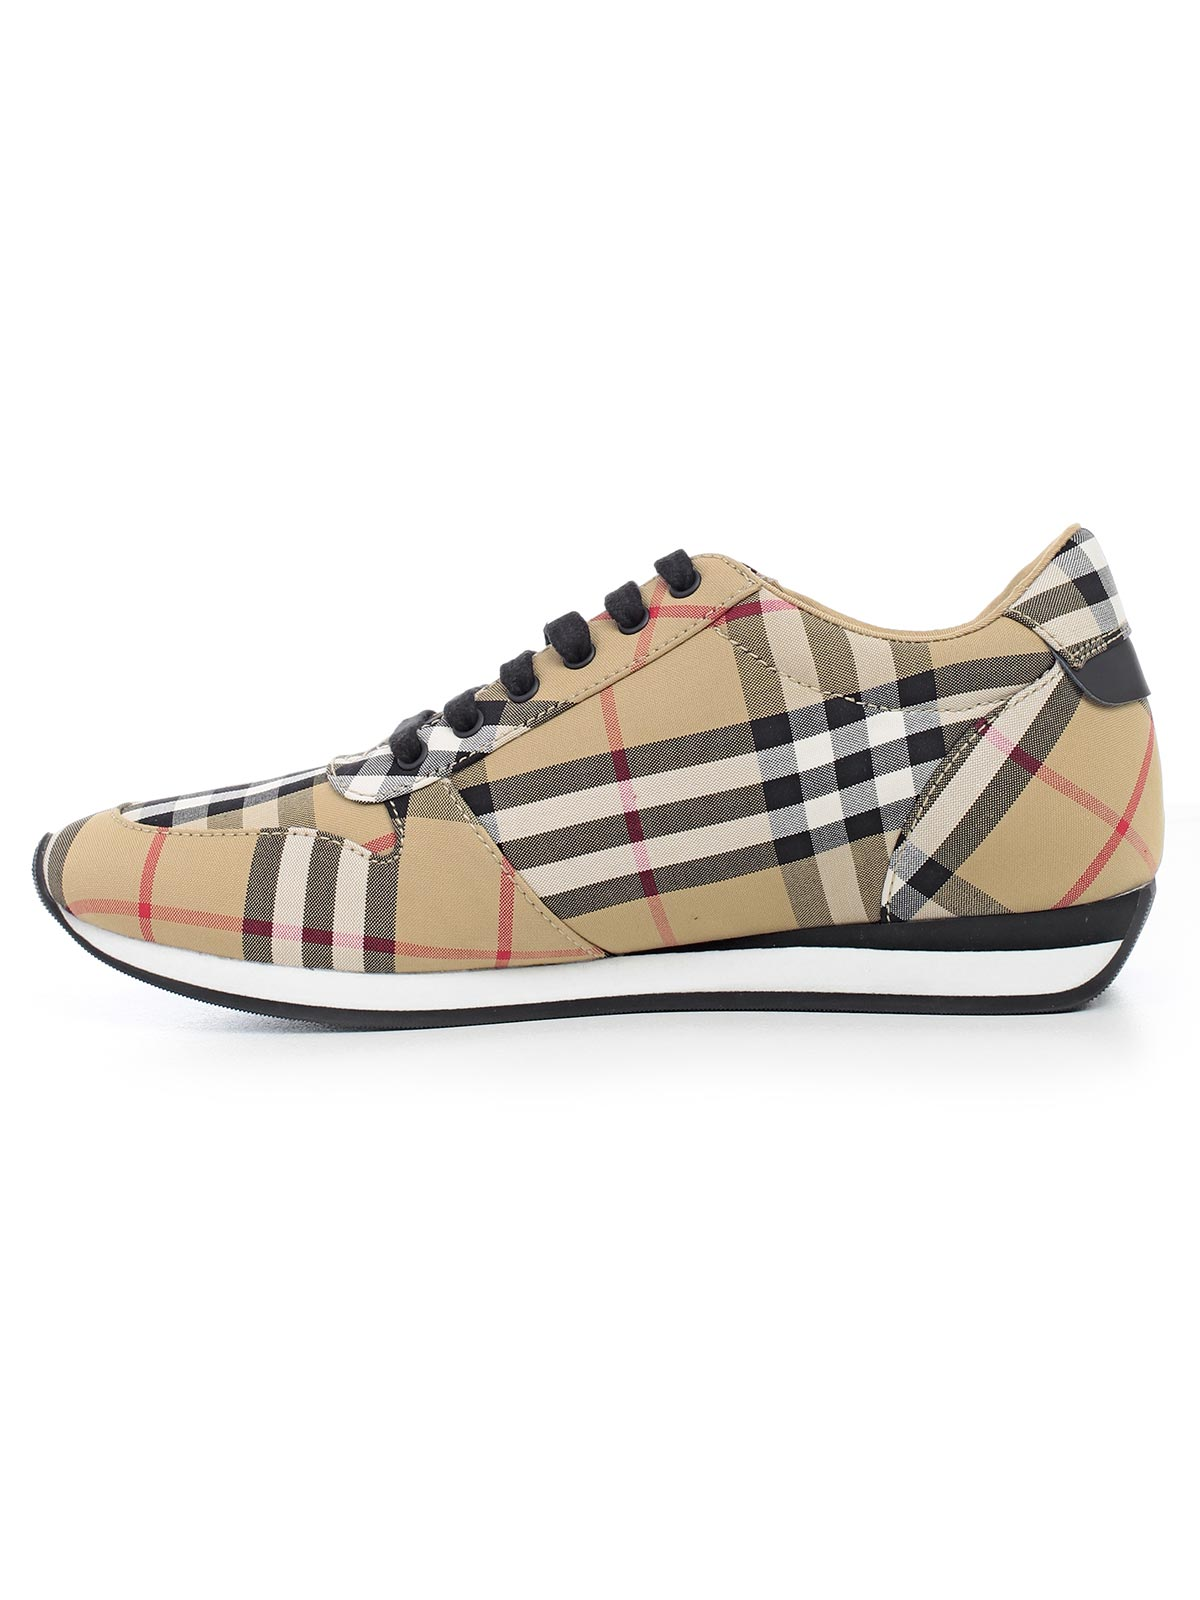 Picture of Burberry Footwear